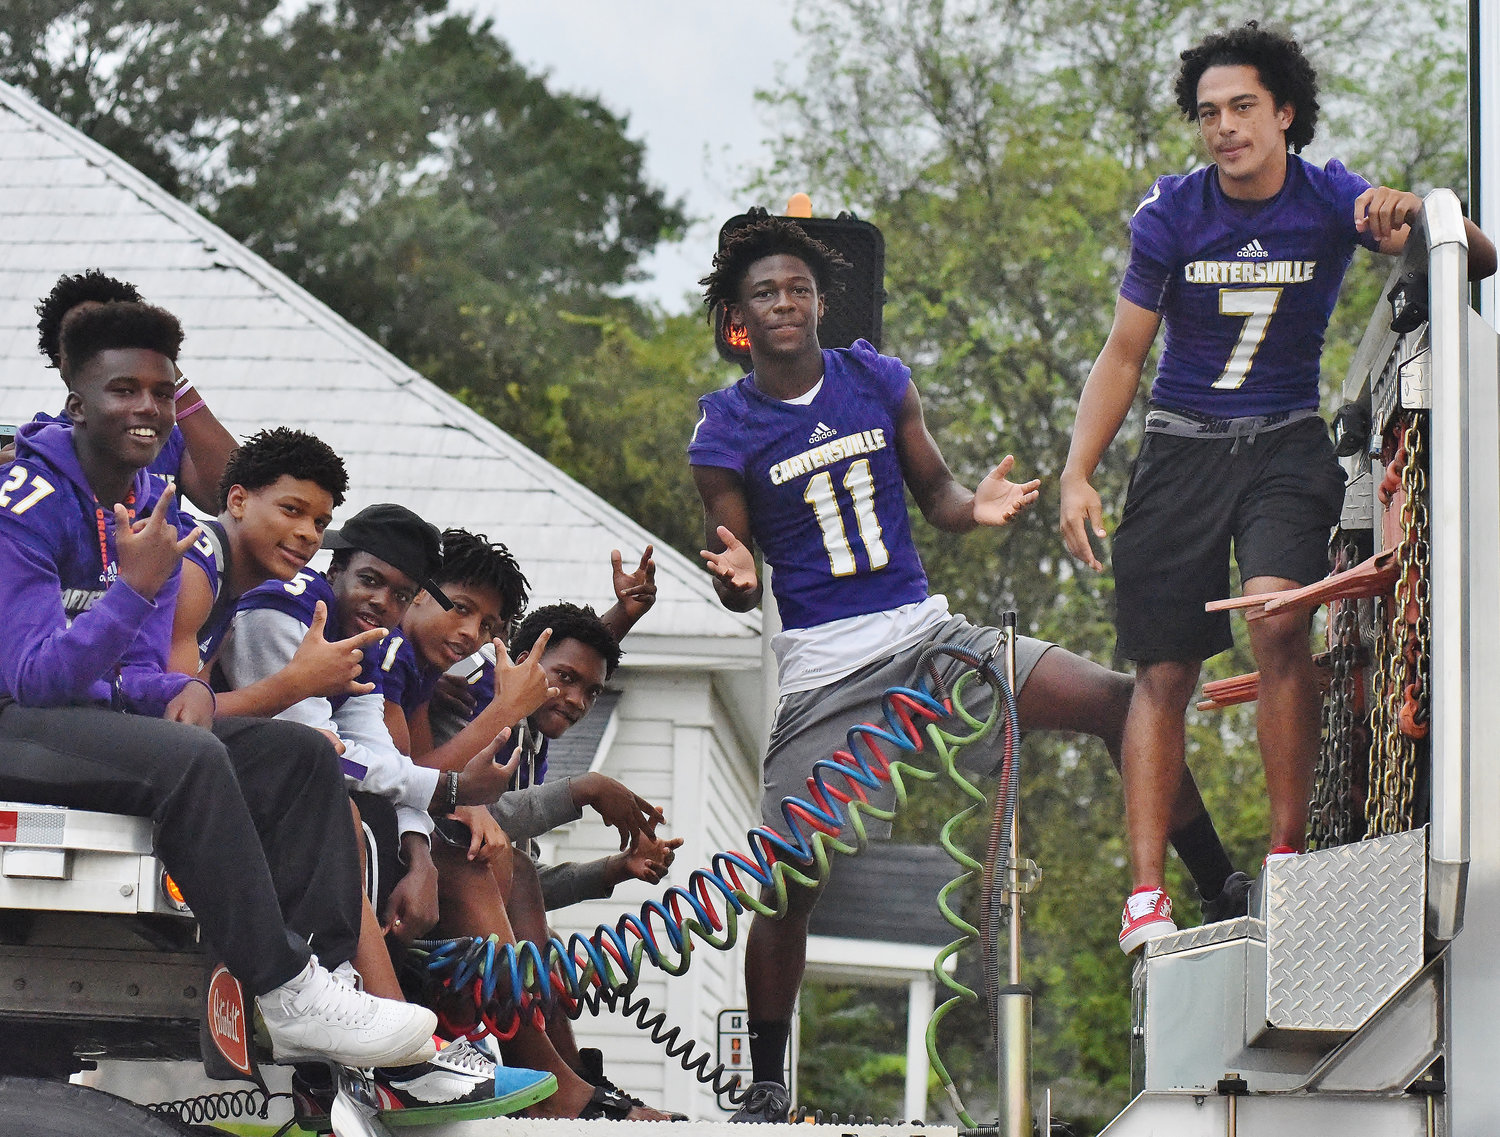 Cartersville High School football players enjoy the ride during the 2018 Homecoming Parade.